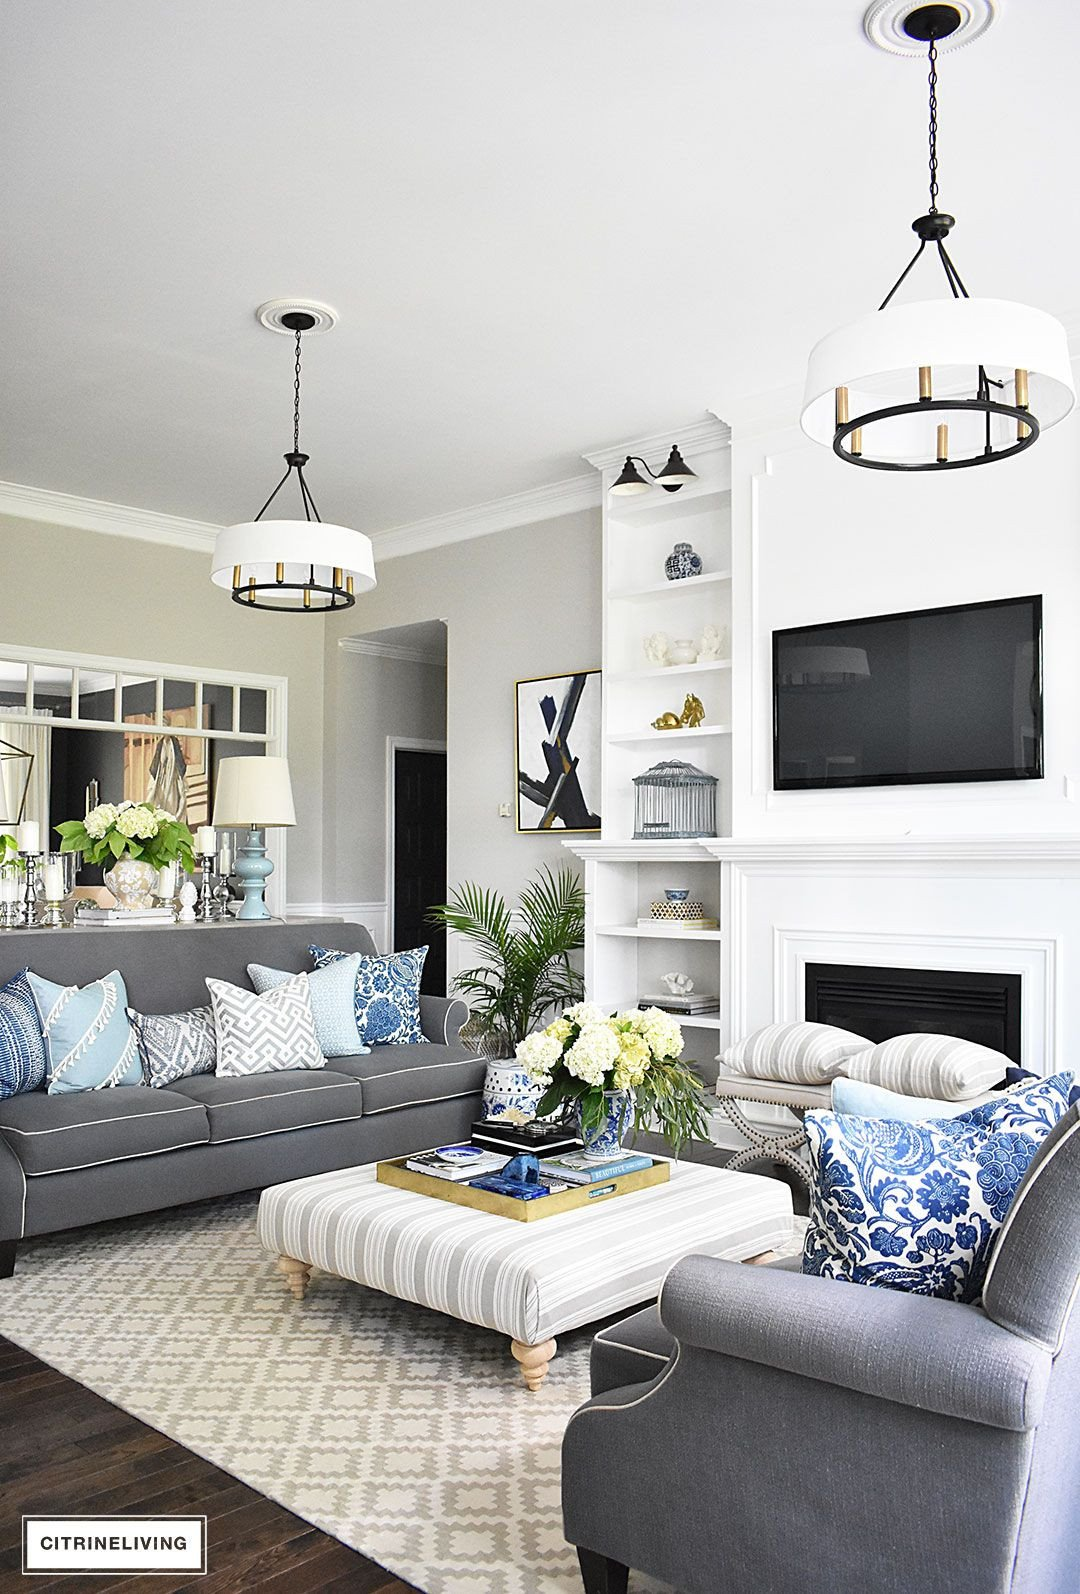 White Living Room Decor Ideas New 20 Fresh Ideas for Decorating with Blue and White